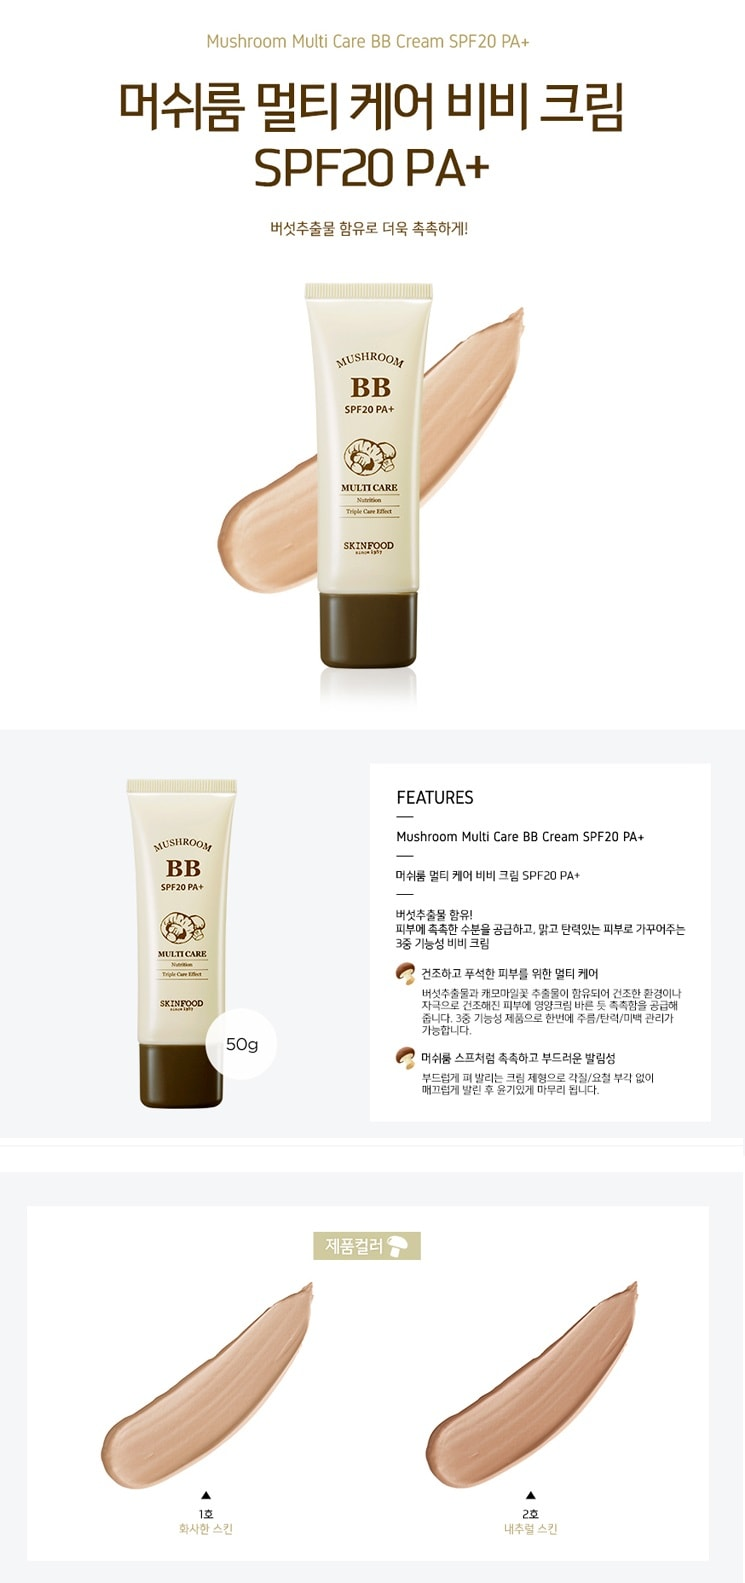 SKINFOOD Mushroom Multi Care BB Cream SPF20 PA+ [No.2 Natural Skin]